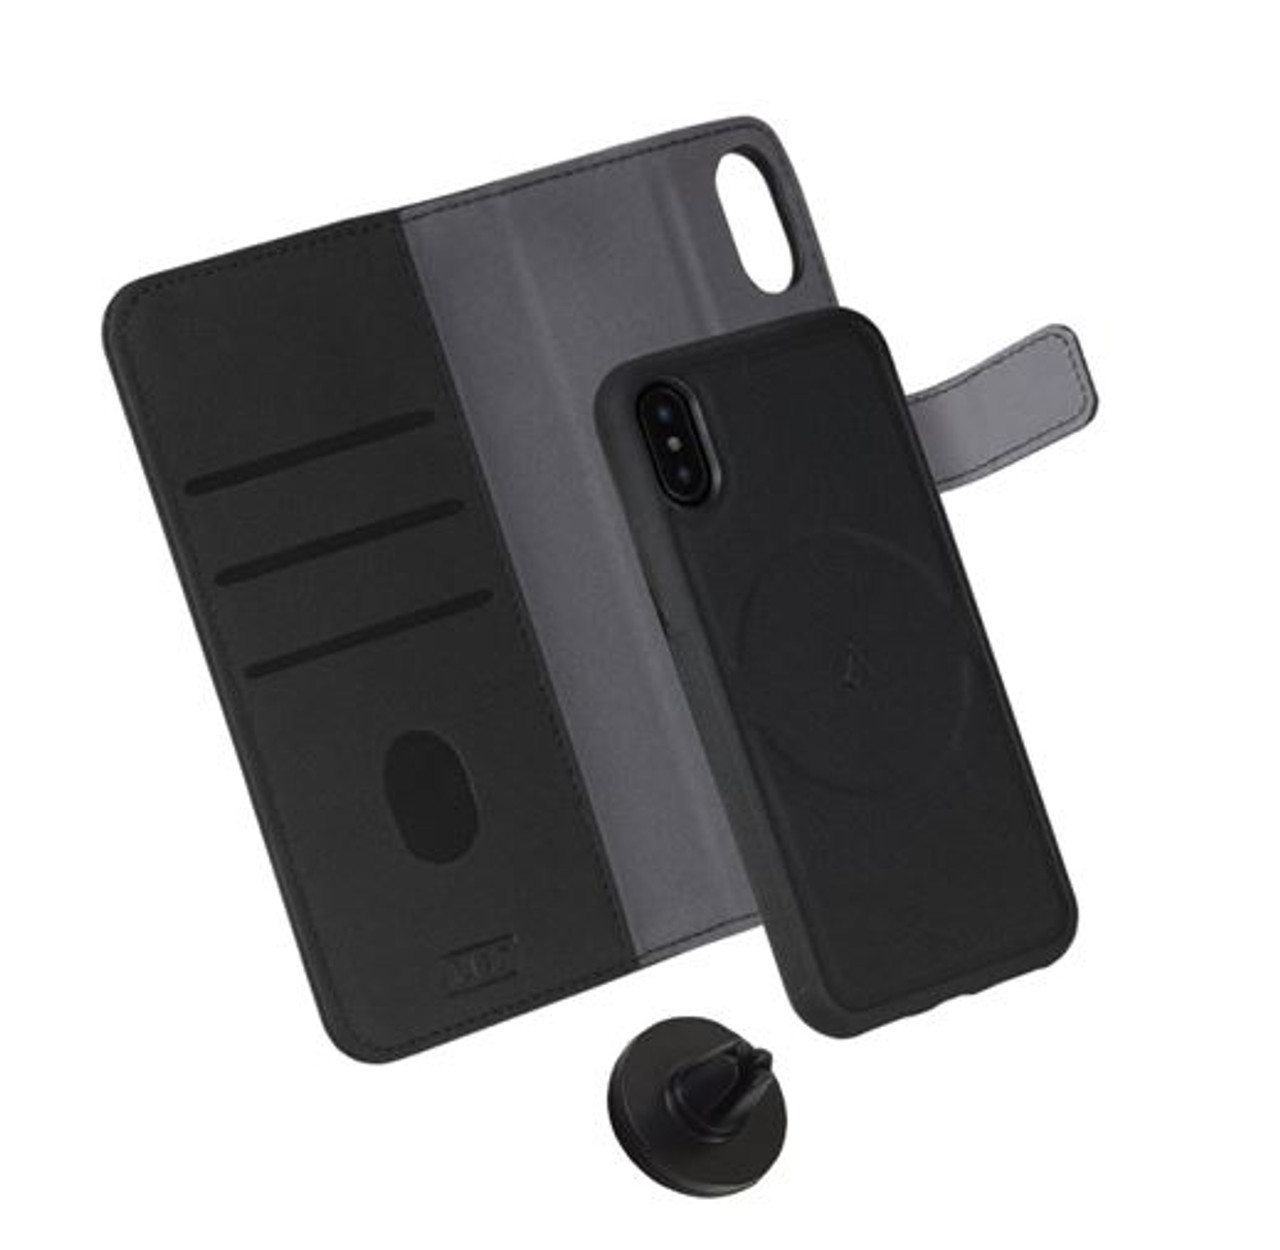 LBT Switch Wallet Cell Phone Case - Black - Your Choice: Samsung S9 & iPhone 6/7/8/8 Plus/X